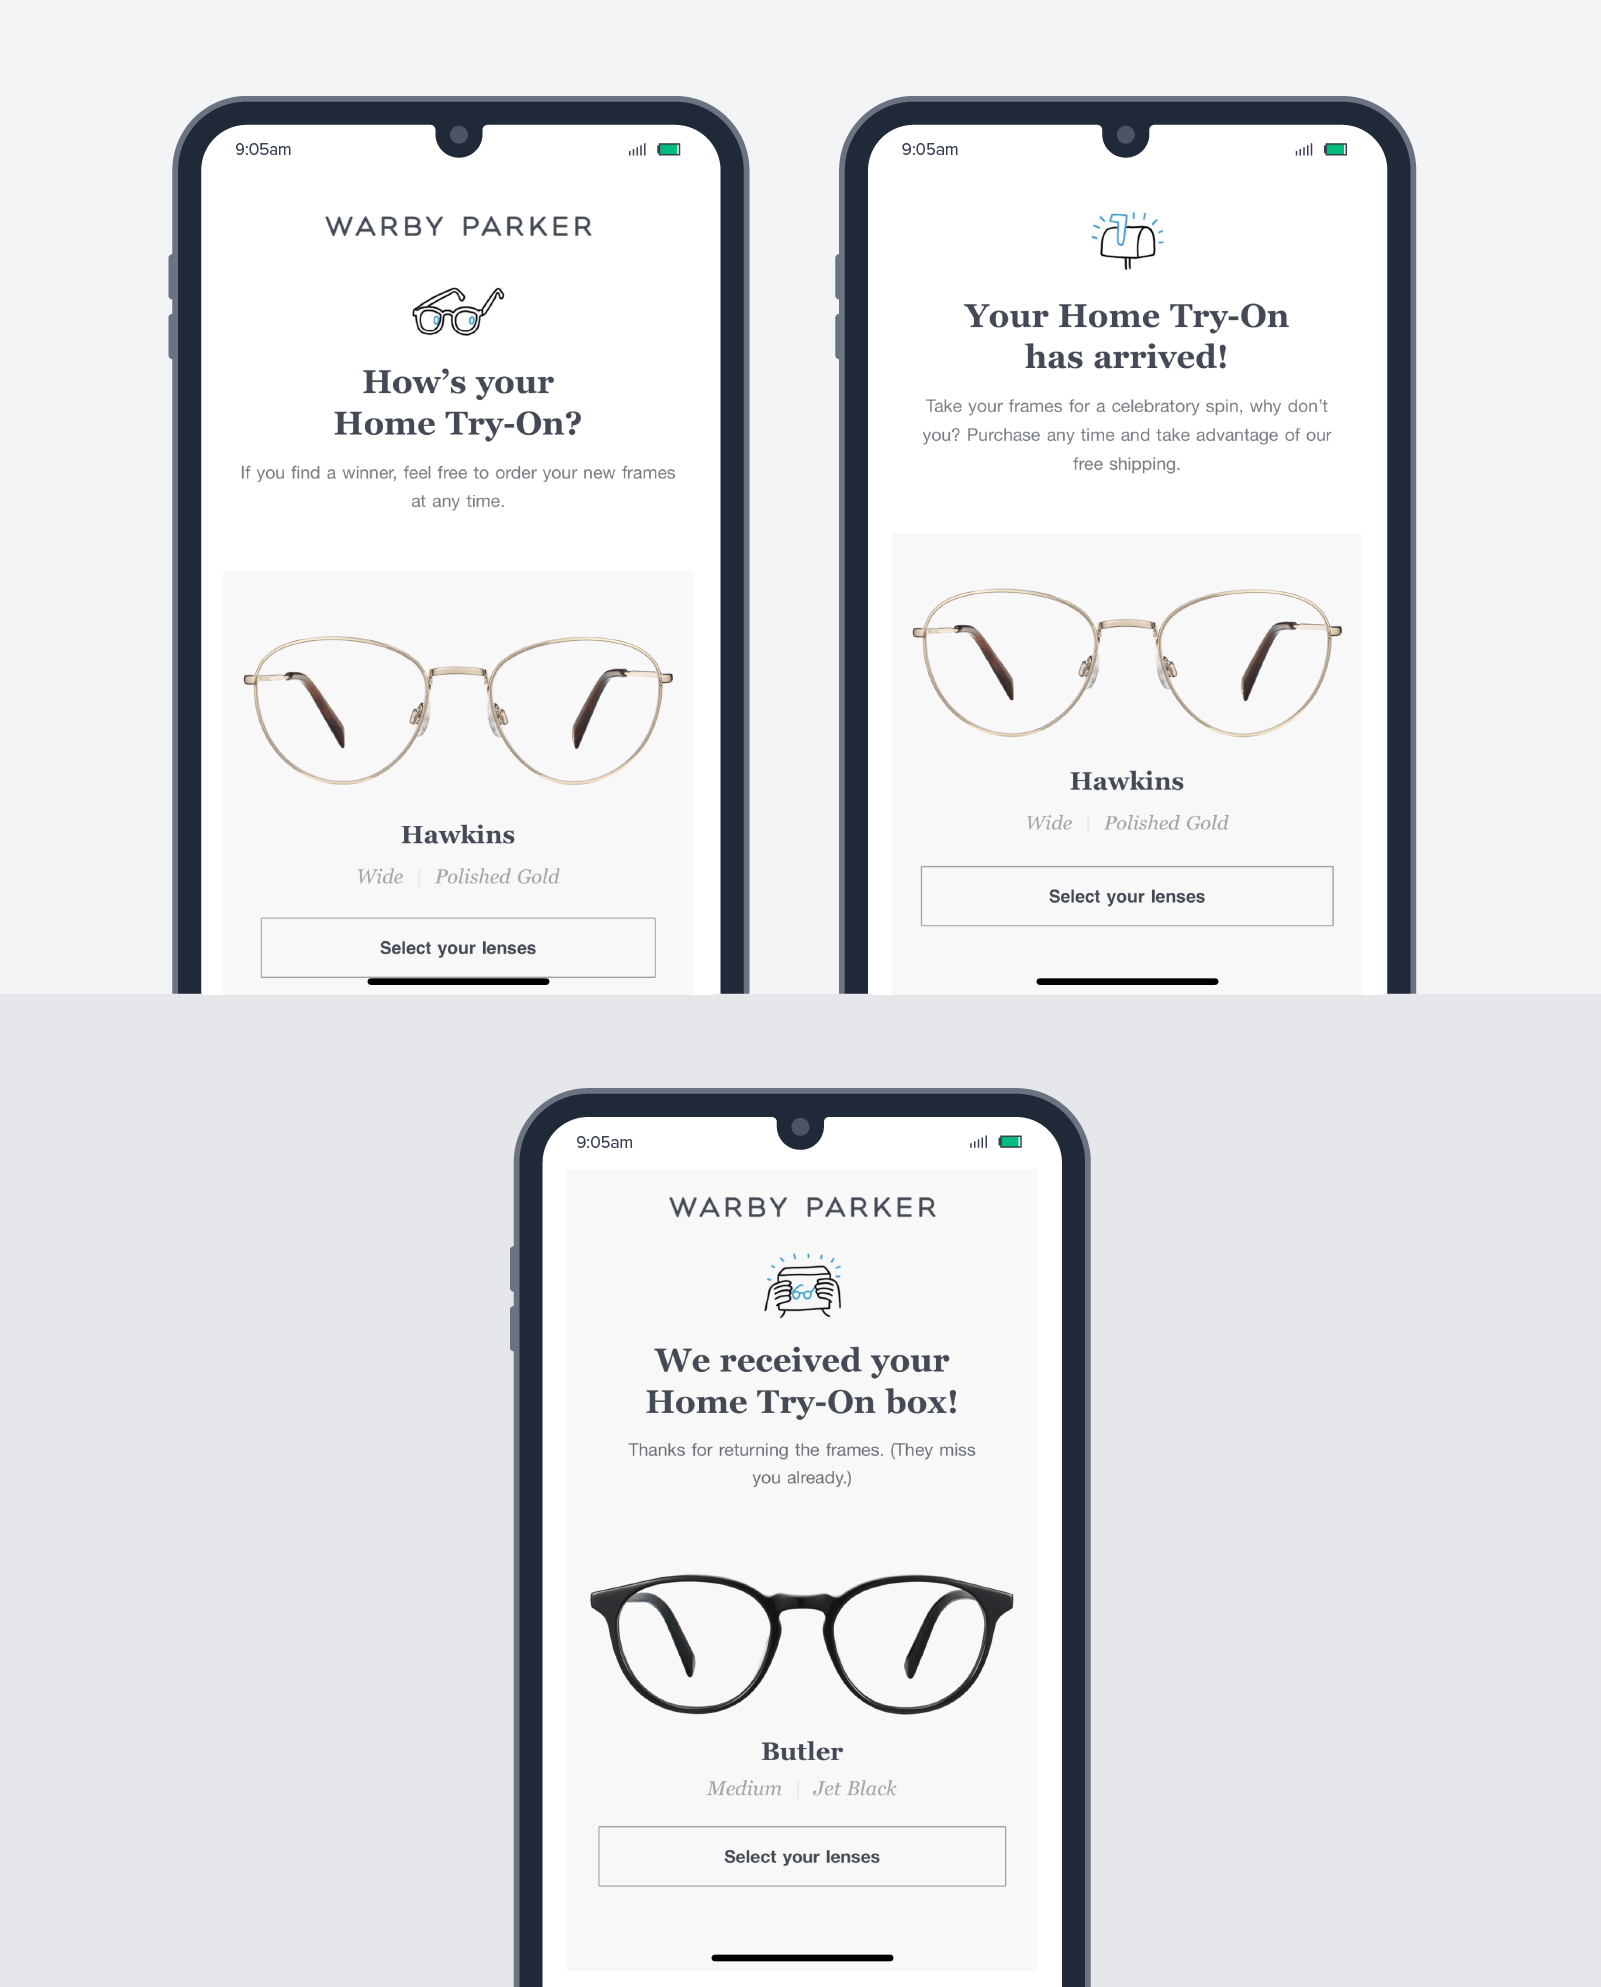 Warby Parkers prompt the user to complete purchases